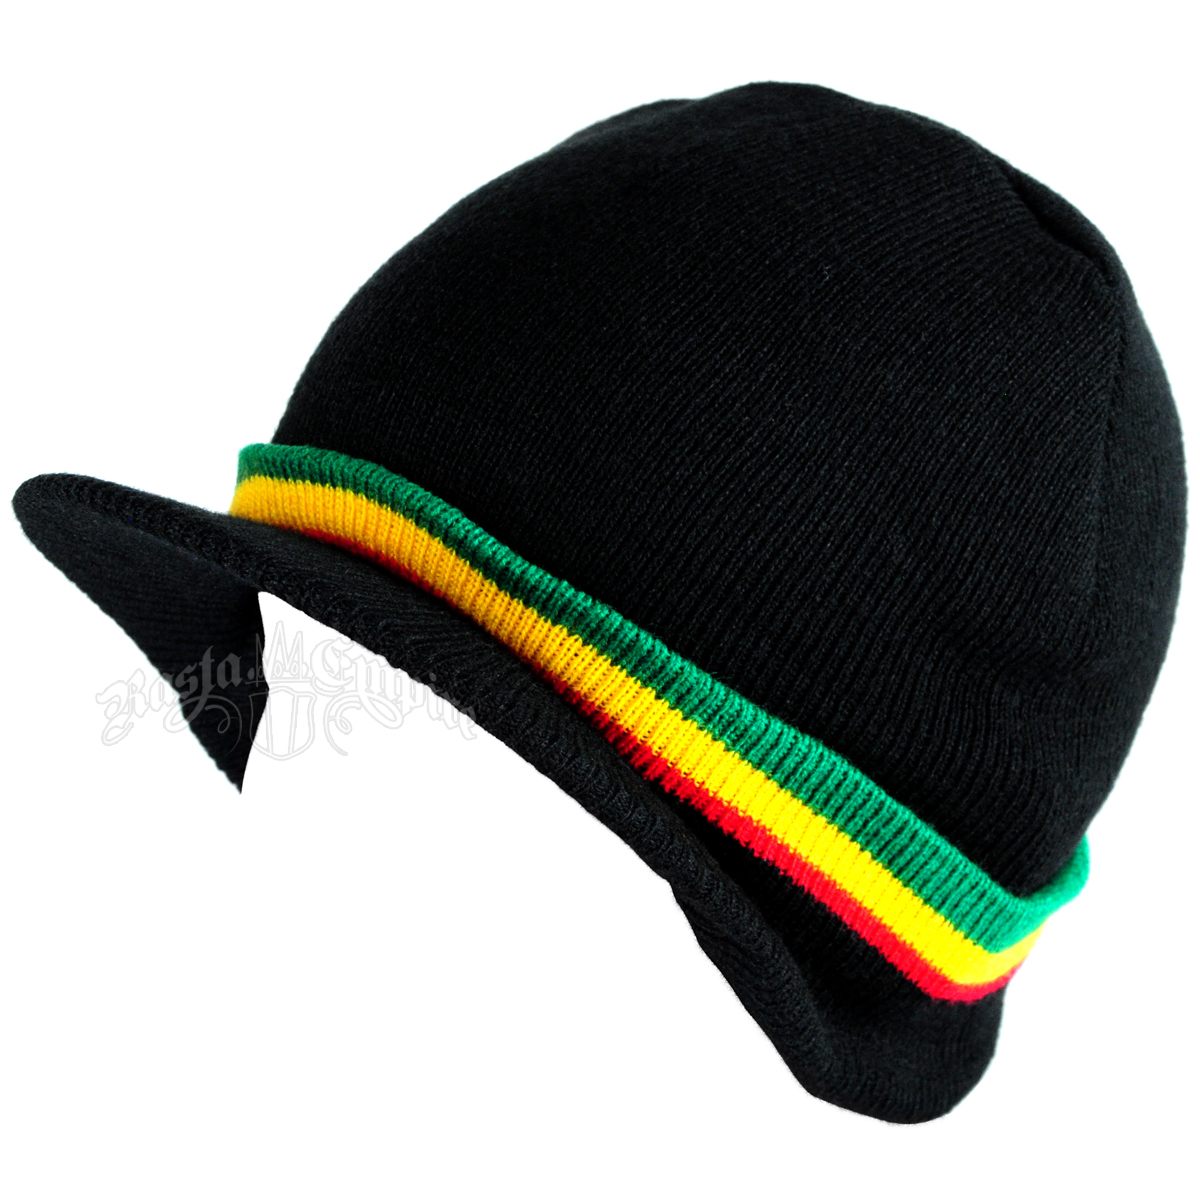 e215b8a27df3e Rasta Striped Cuffed Visor Cap